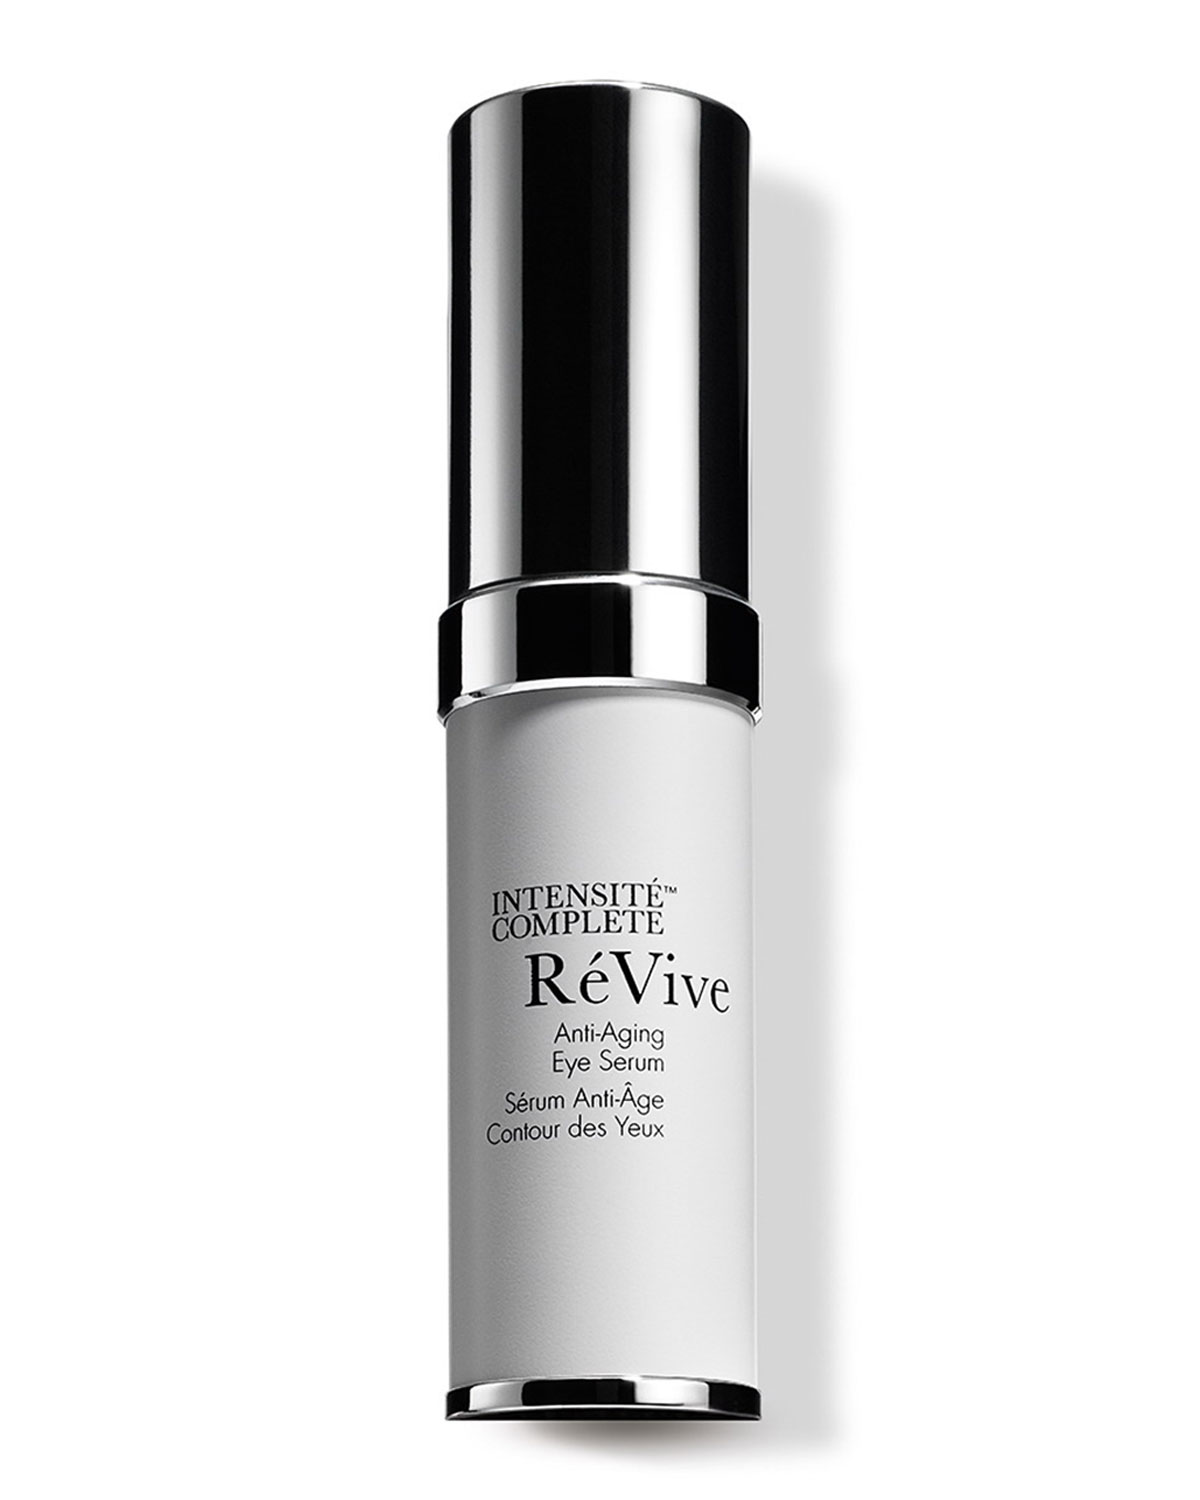 ReVive 0.5 oz. Intensite Complete Anti-Aging Eye Serum